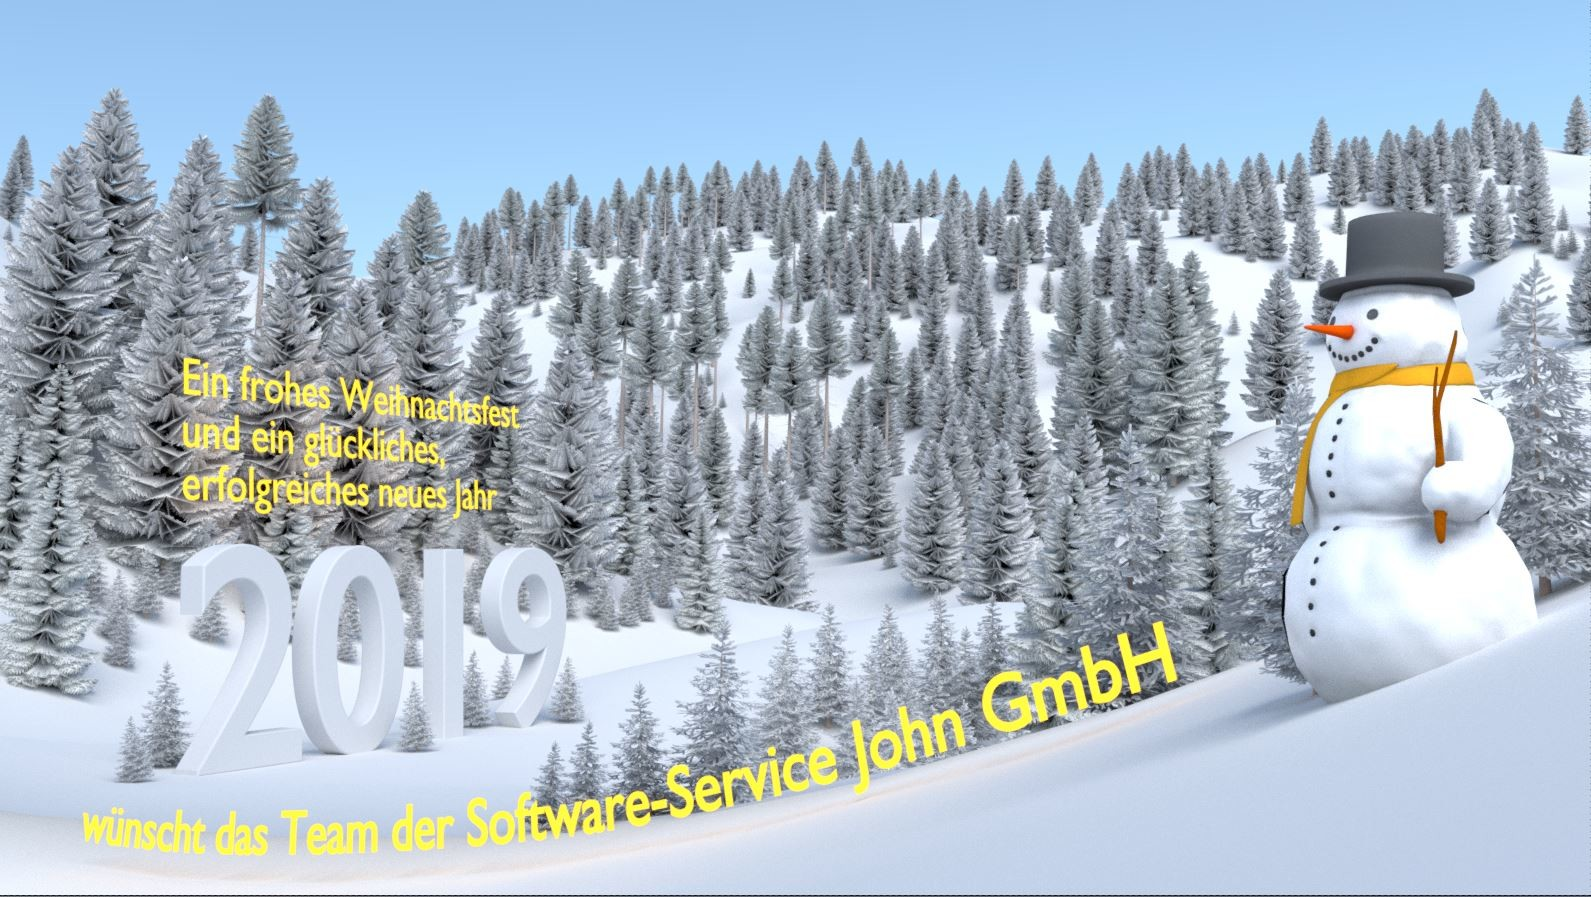 Test-Render3 with high-poly trees and text.  (Text is a bit better readable now)